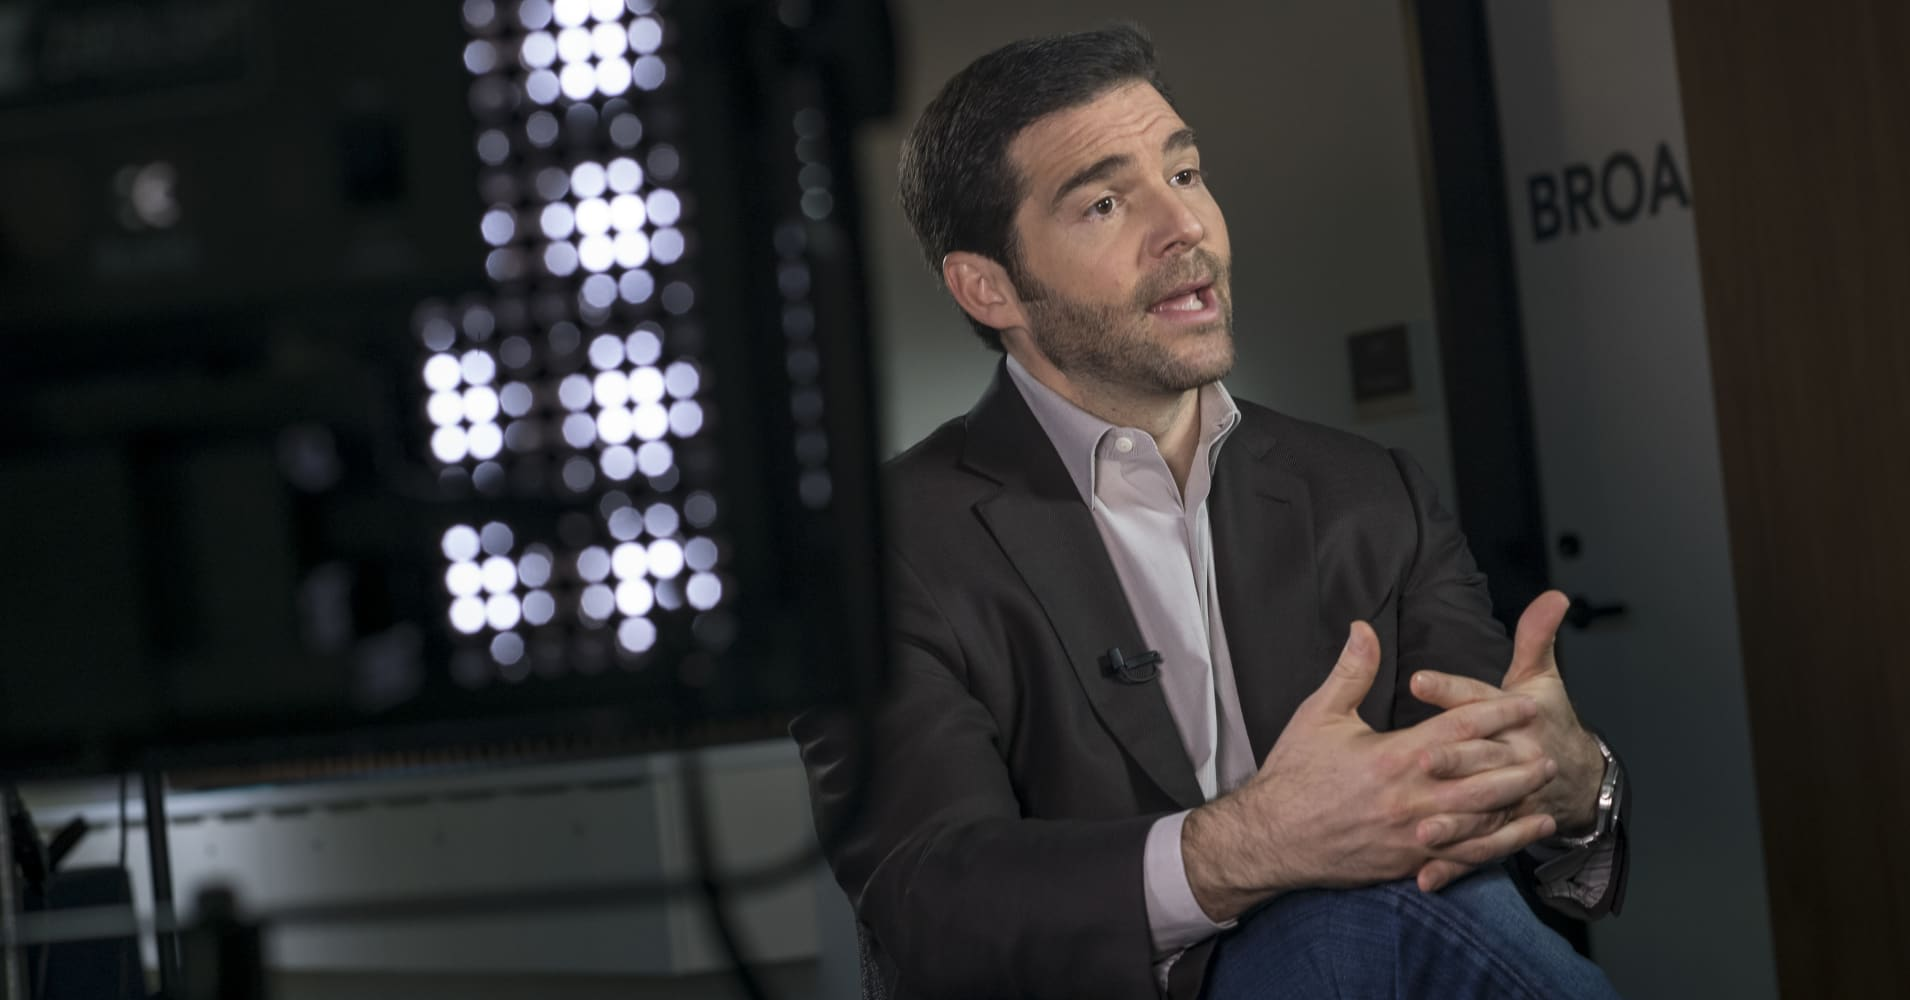 LinkedIn CEO: 2 questions every job seeker should be prepared to answer